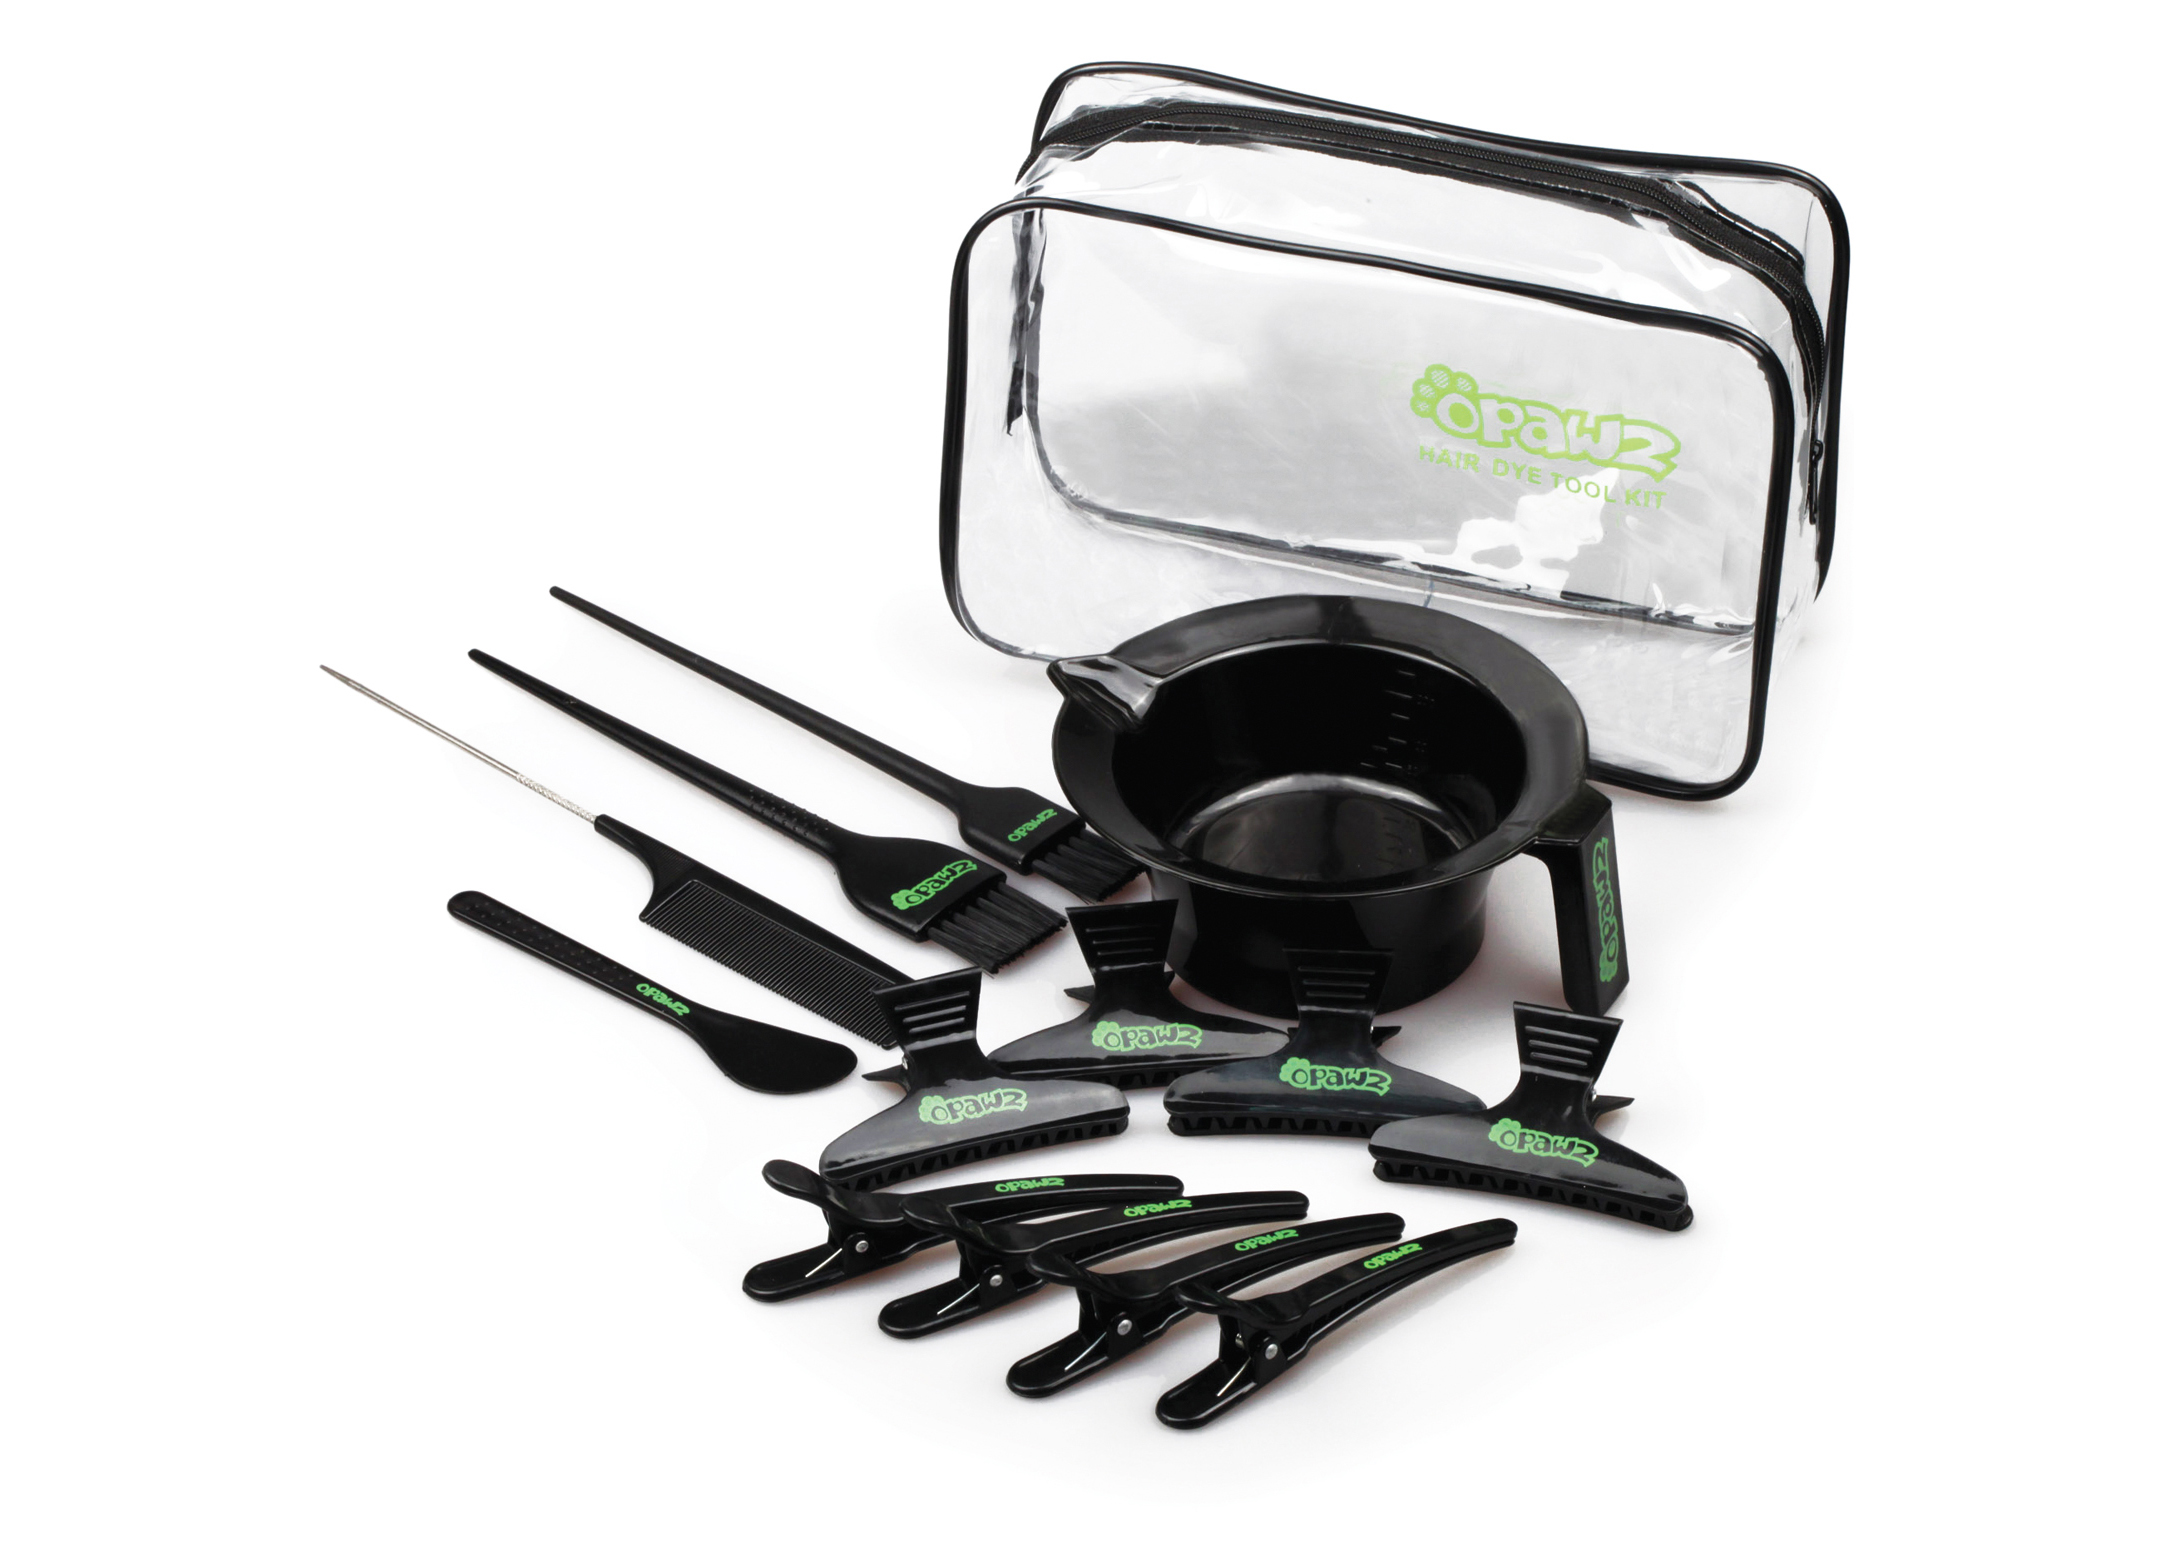 Opawz Hair Dye Tool Kit 14pcs